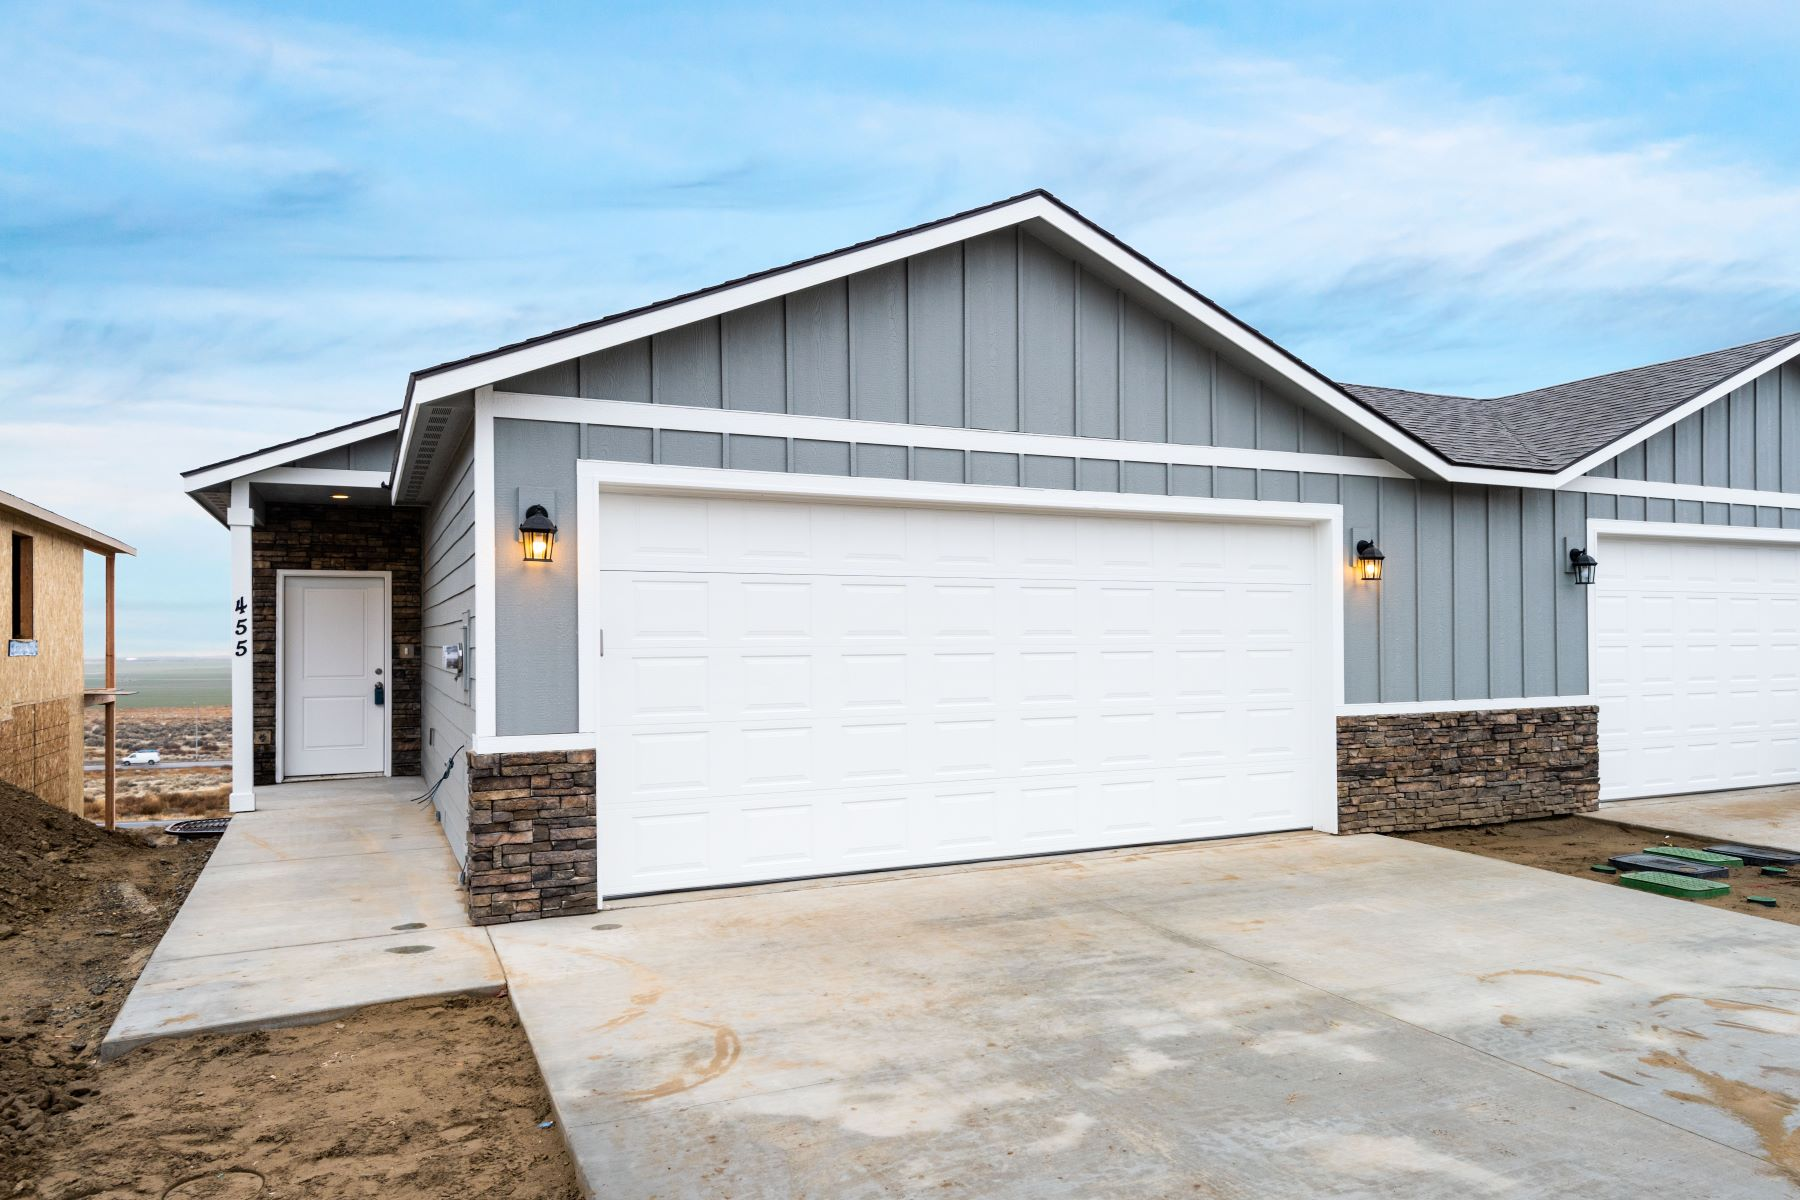 townhouses for Sale at New townhome community with views! 495 Bedrock Loop West Richland, Washington 99353 United States